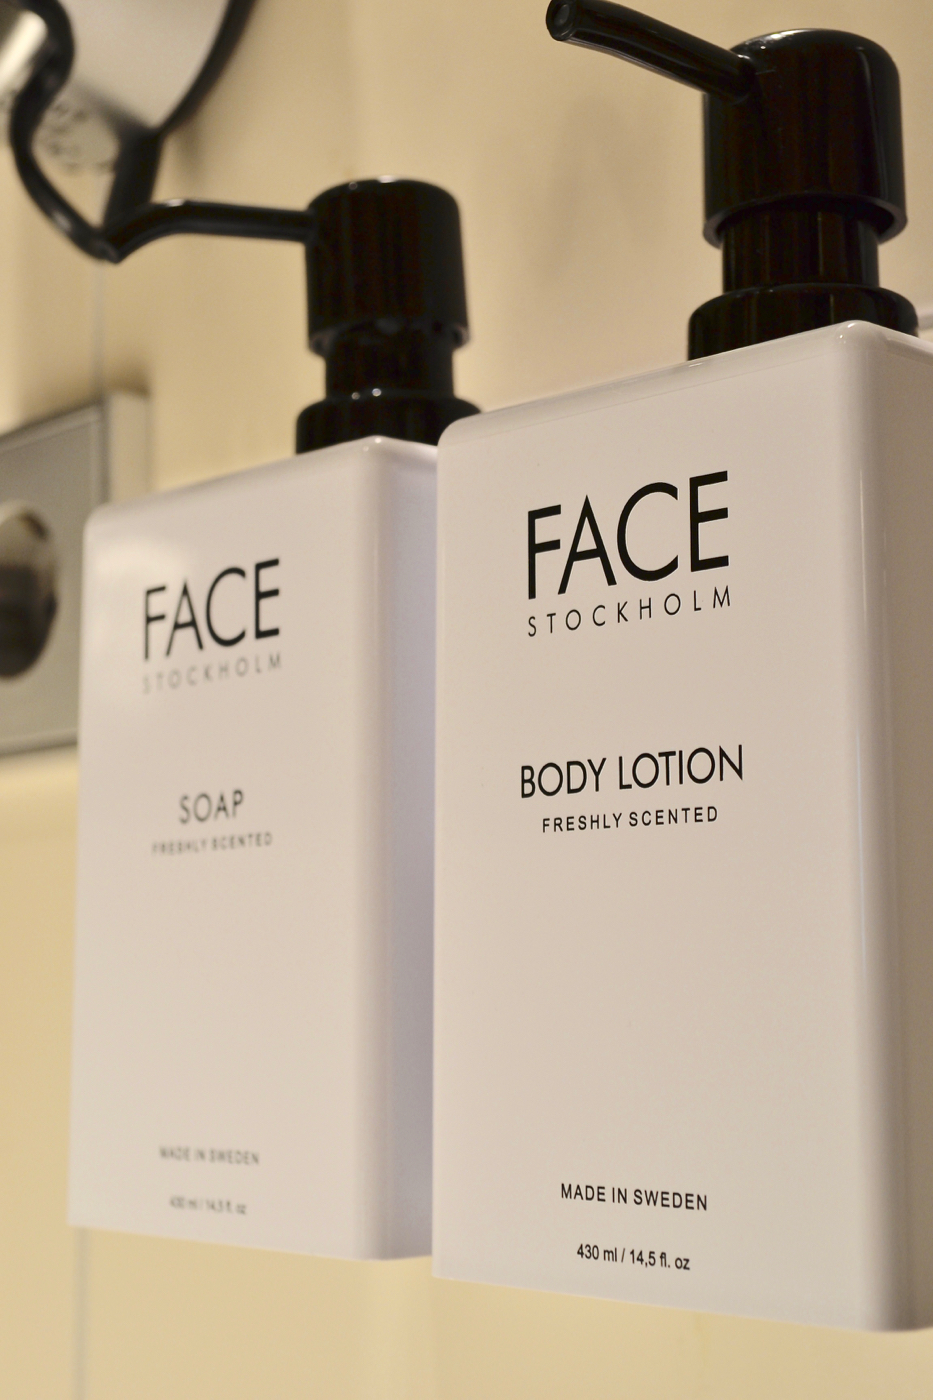 Face cosmetics toiletries Scandic Anglais Stockholm